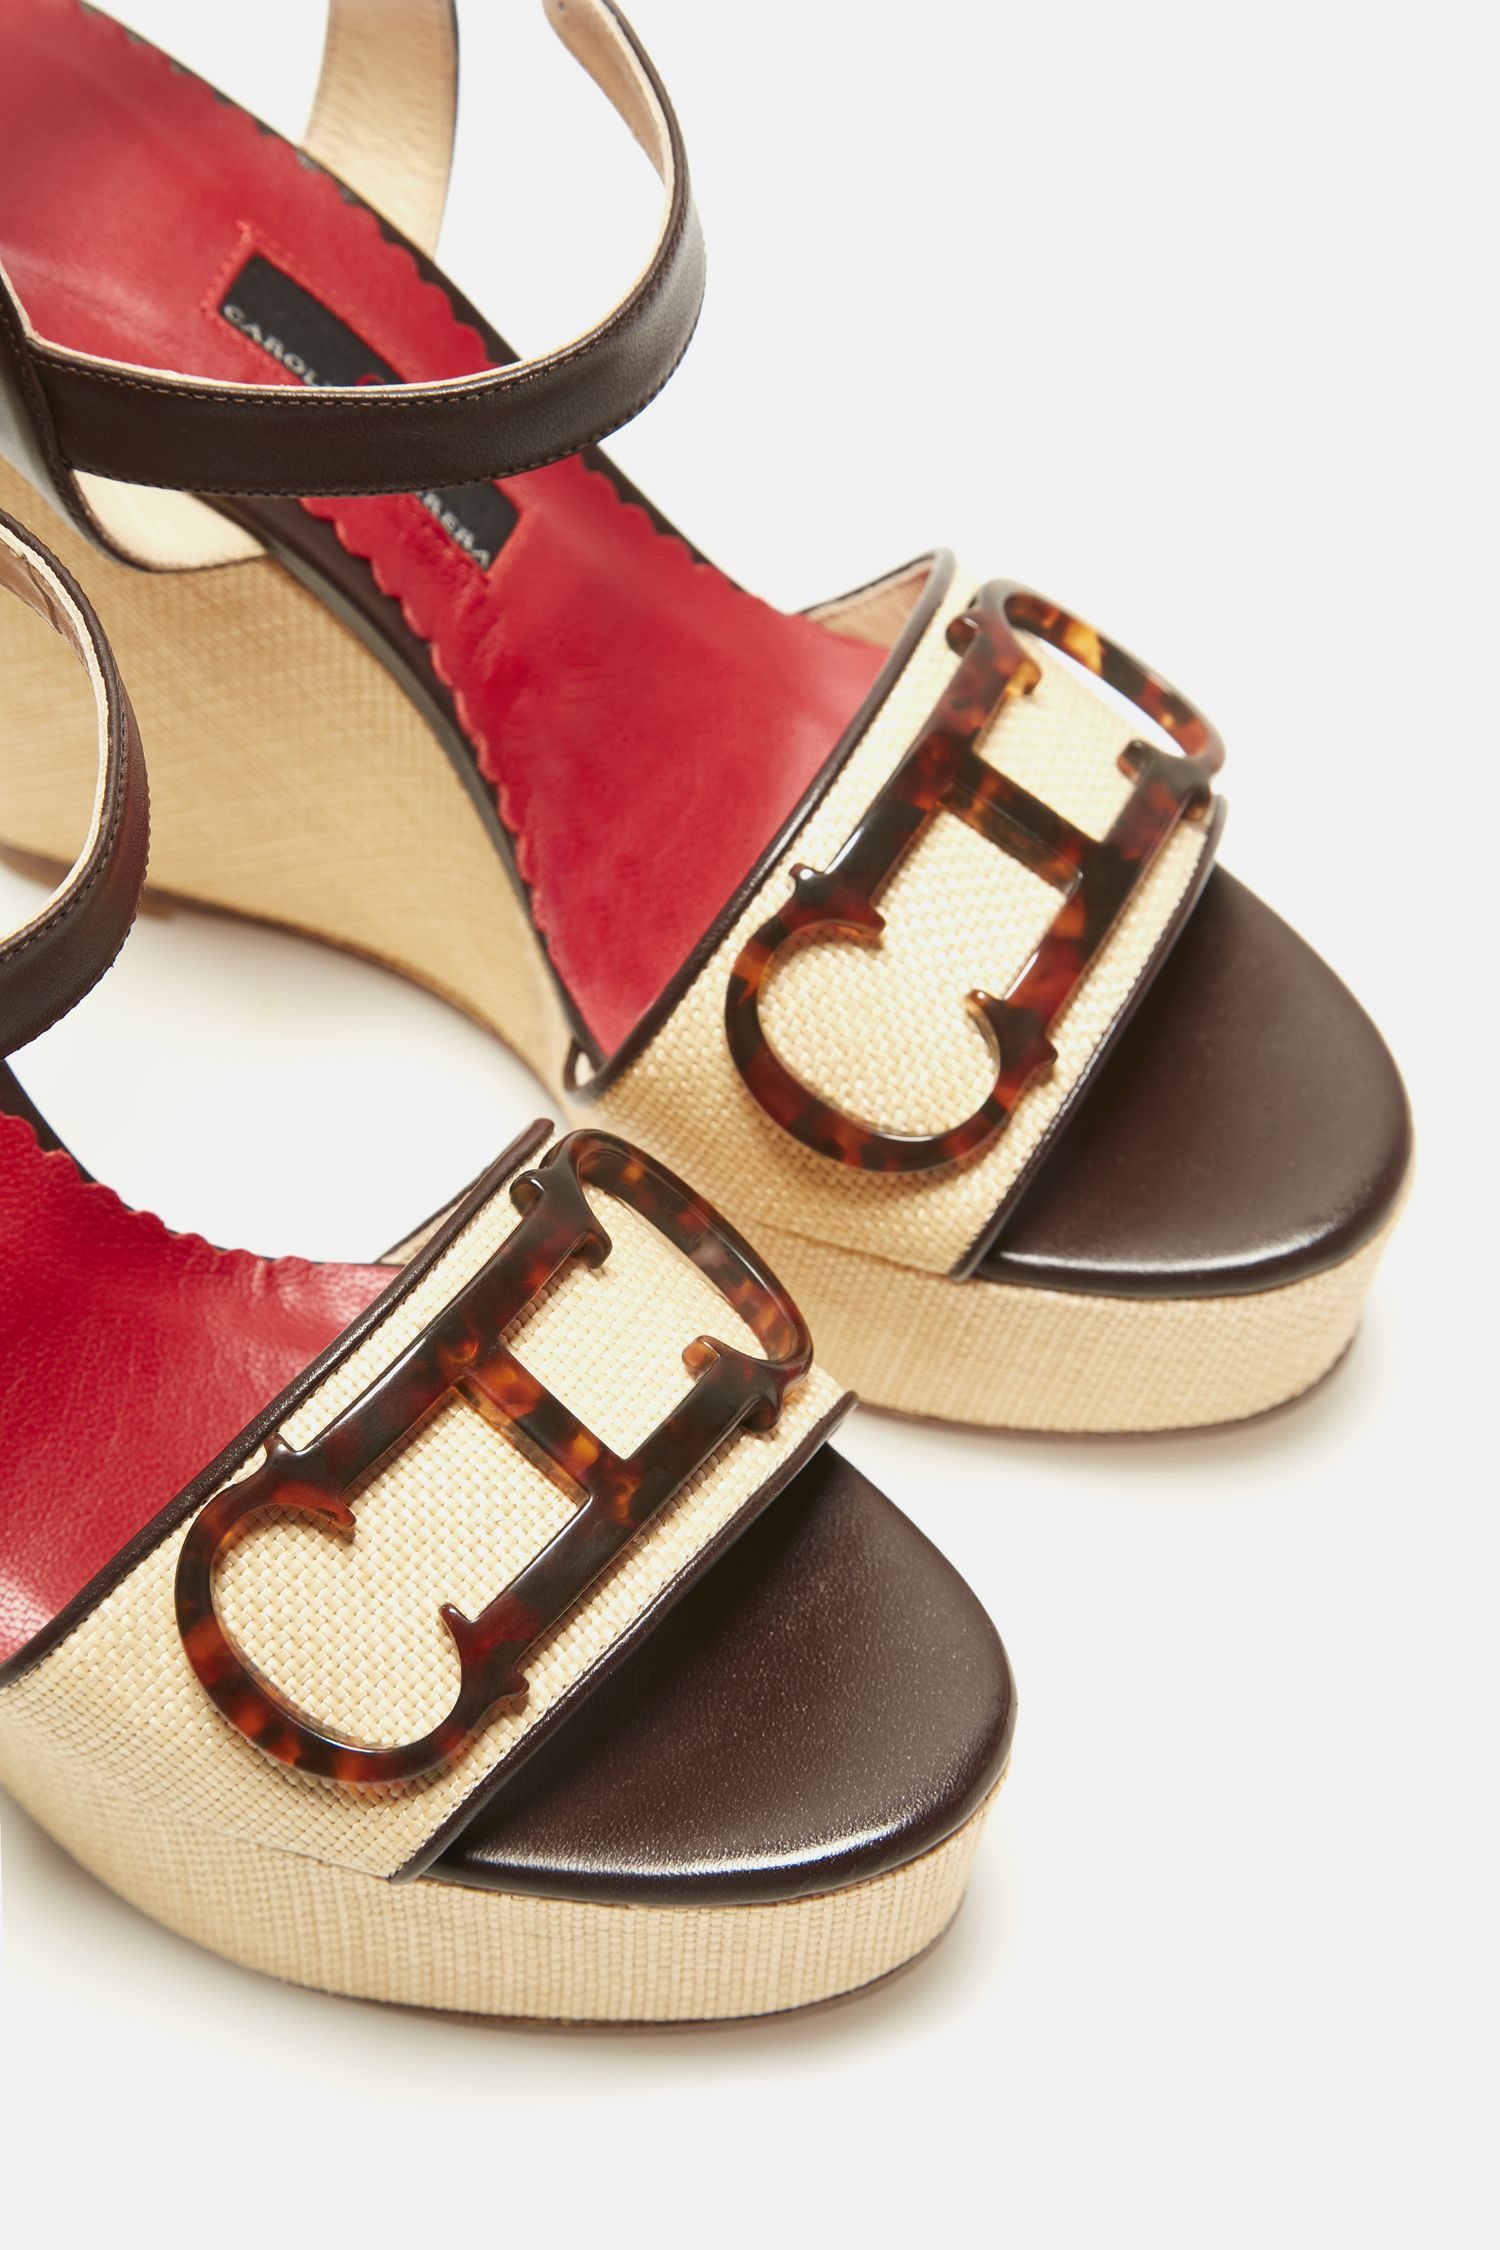 Initials Insignia leather and raffia wedges